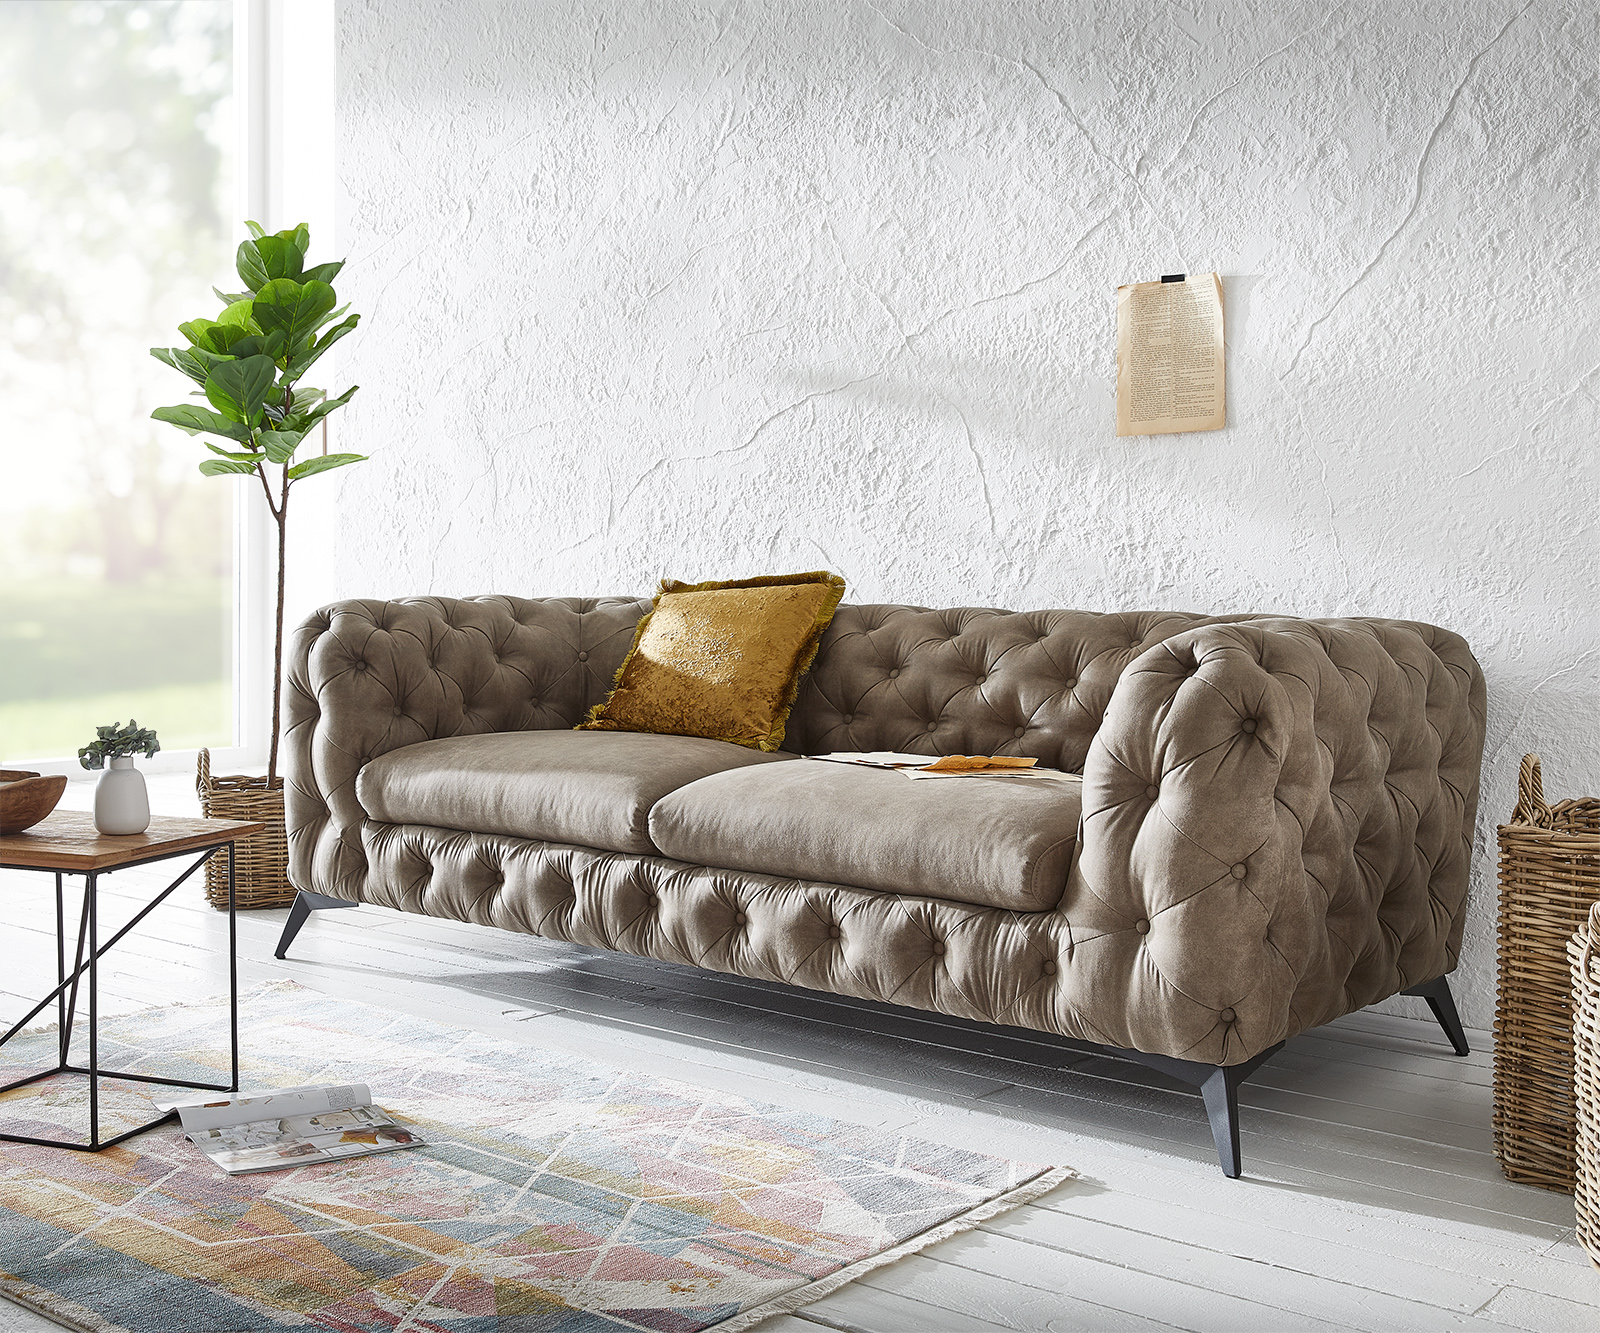 Couch Corleone 3-Sitzer Taupe Vintage